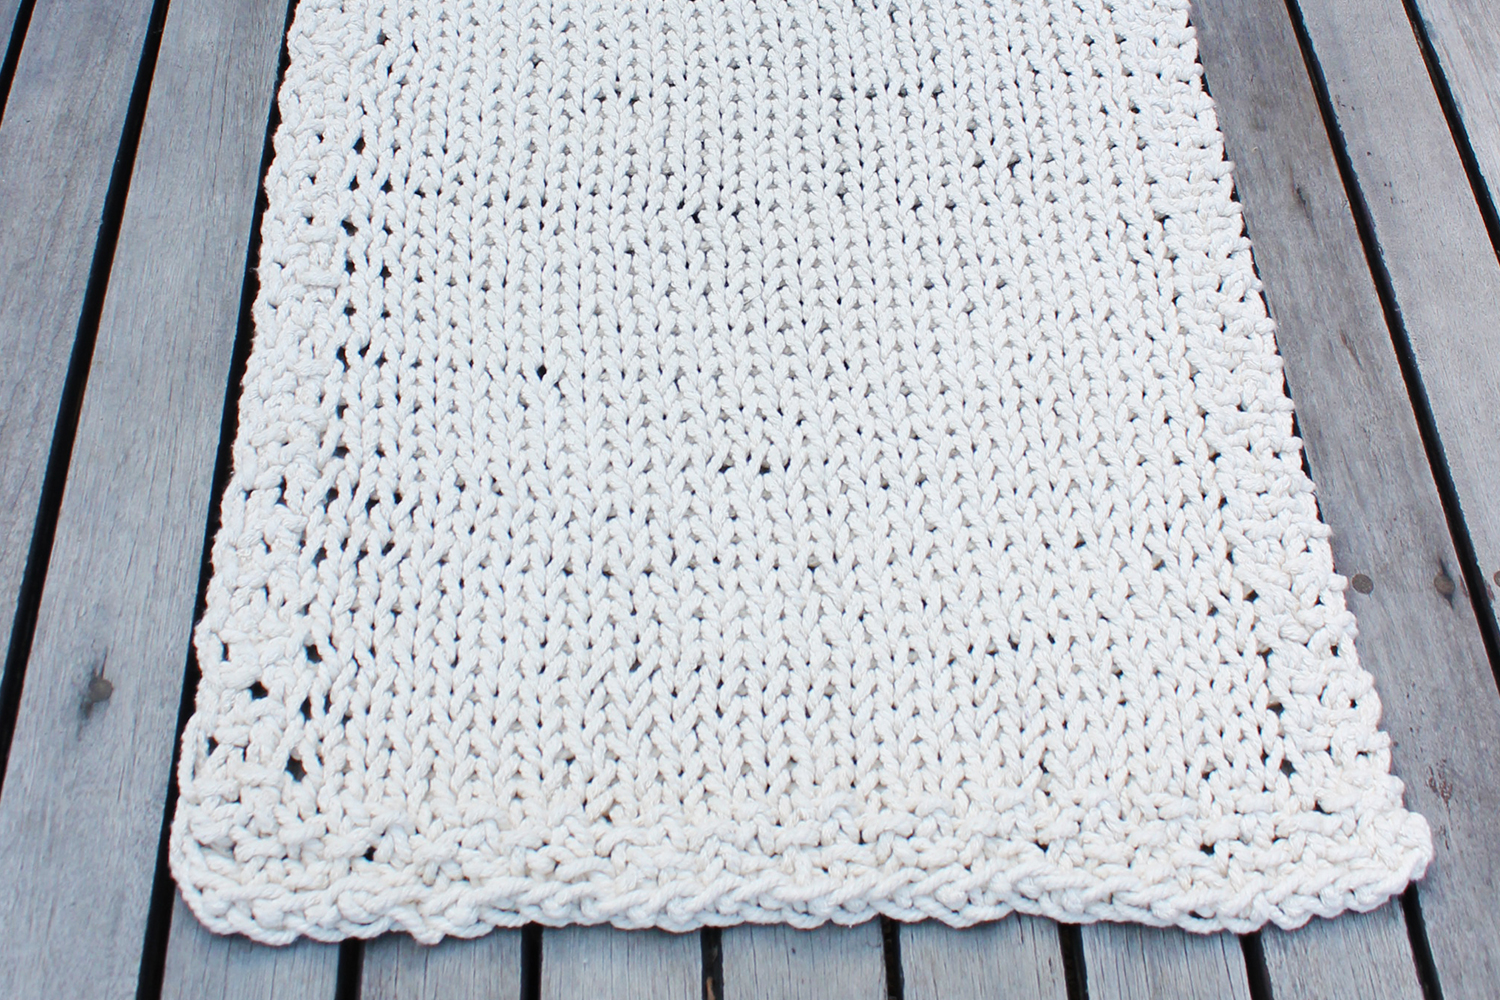 """""""DRESS YOUR FLOORS"""" KNITTED BATHMATS AND FLOOR THROWS   Large -Approx 90cm x 180cm)  Medium -(Approx 90cm x 120cm)  Small - (Approx 60cm x 90cm)"""